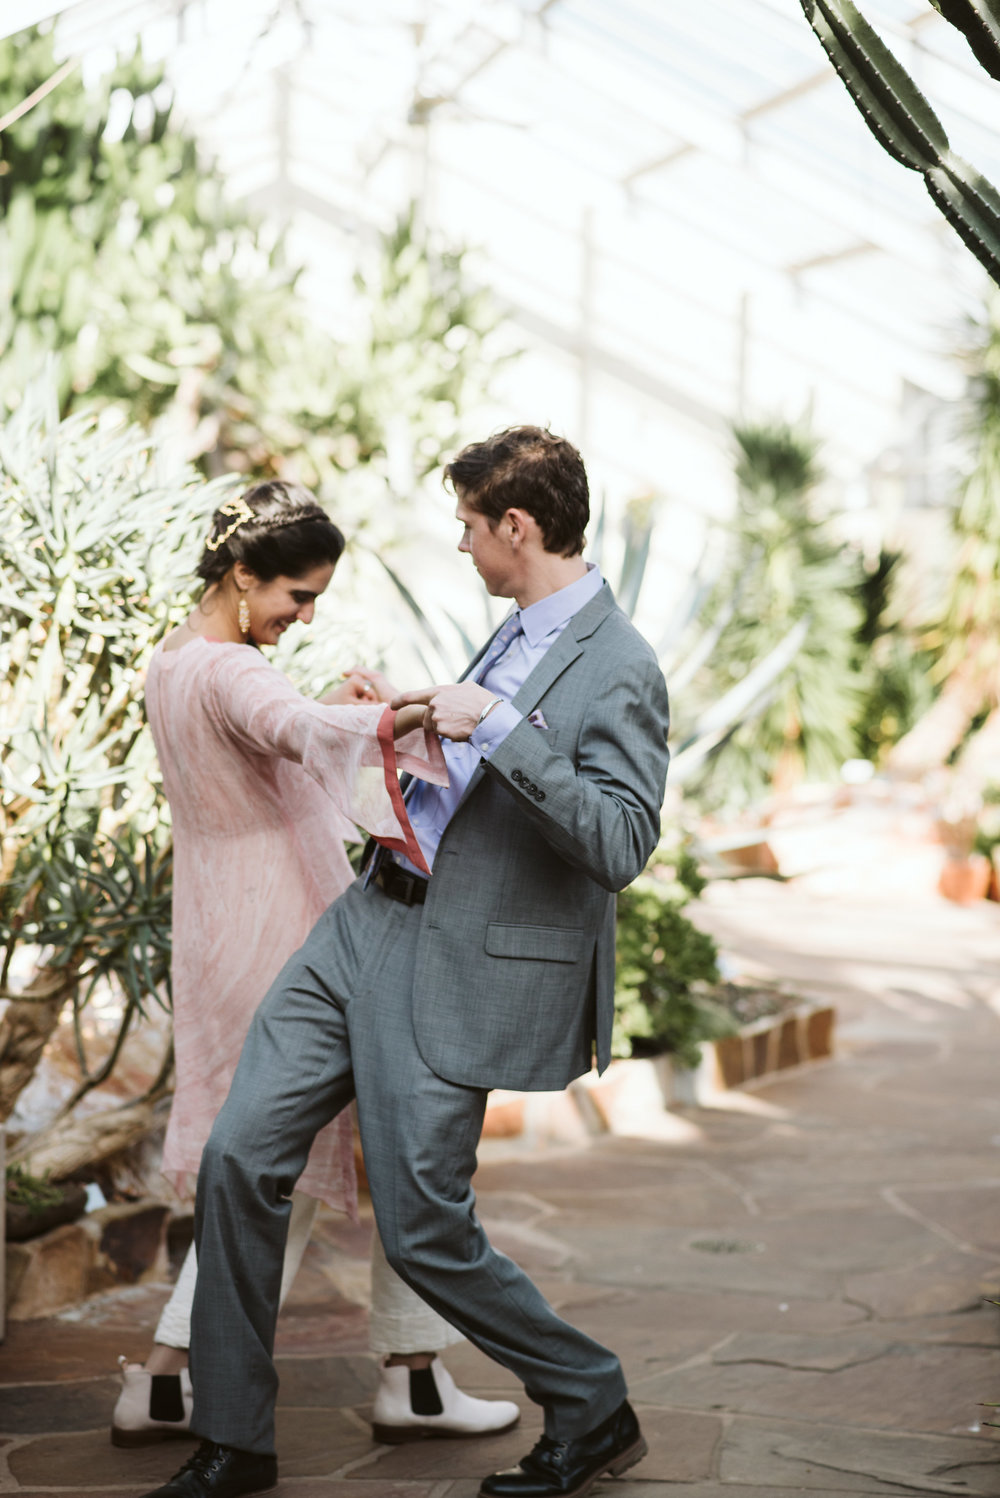 Elopement, Weekday Wedding, Baltimore, Rawlings Conservatory, Greenhouse, Maryland Wedding Photographer, Indian American, Nature, Romantic, Garden, Bride and Groom Dancing, Candid Photo, Sweet Moment